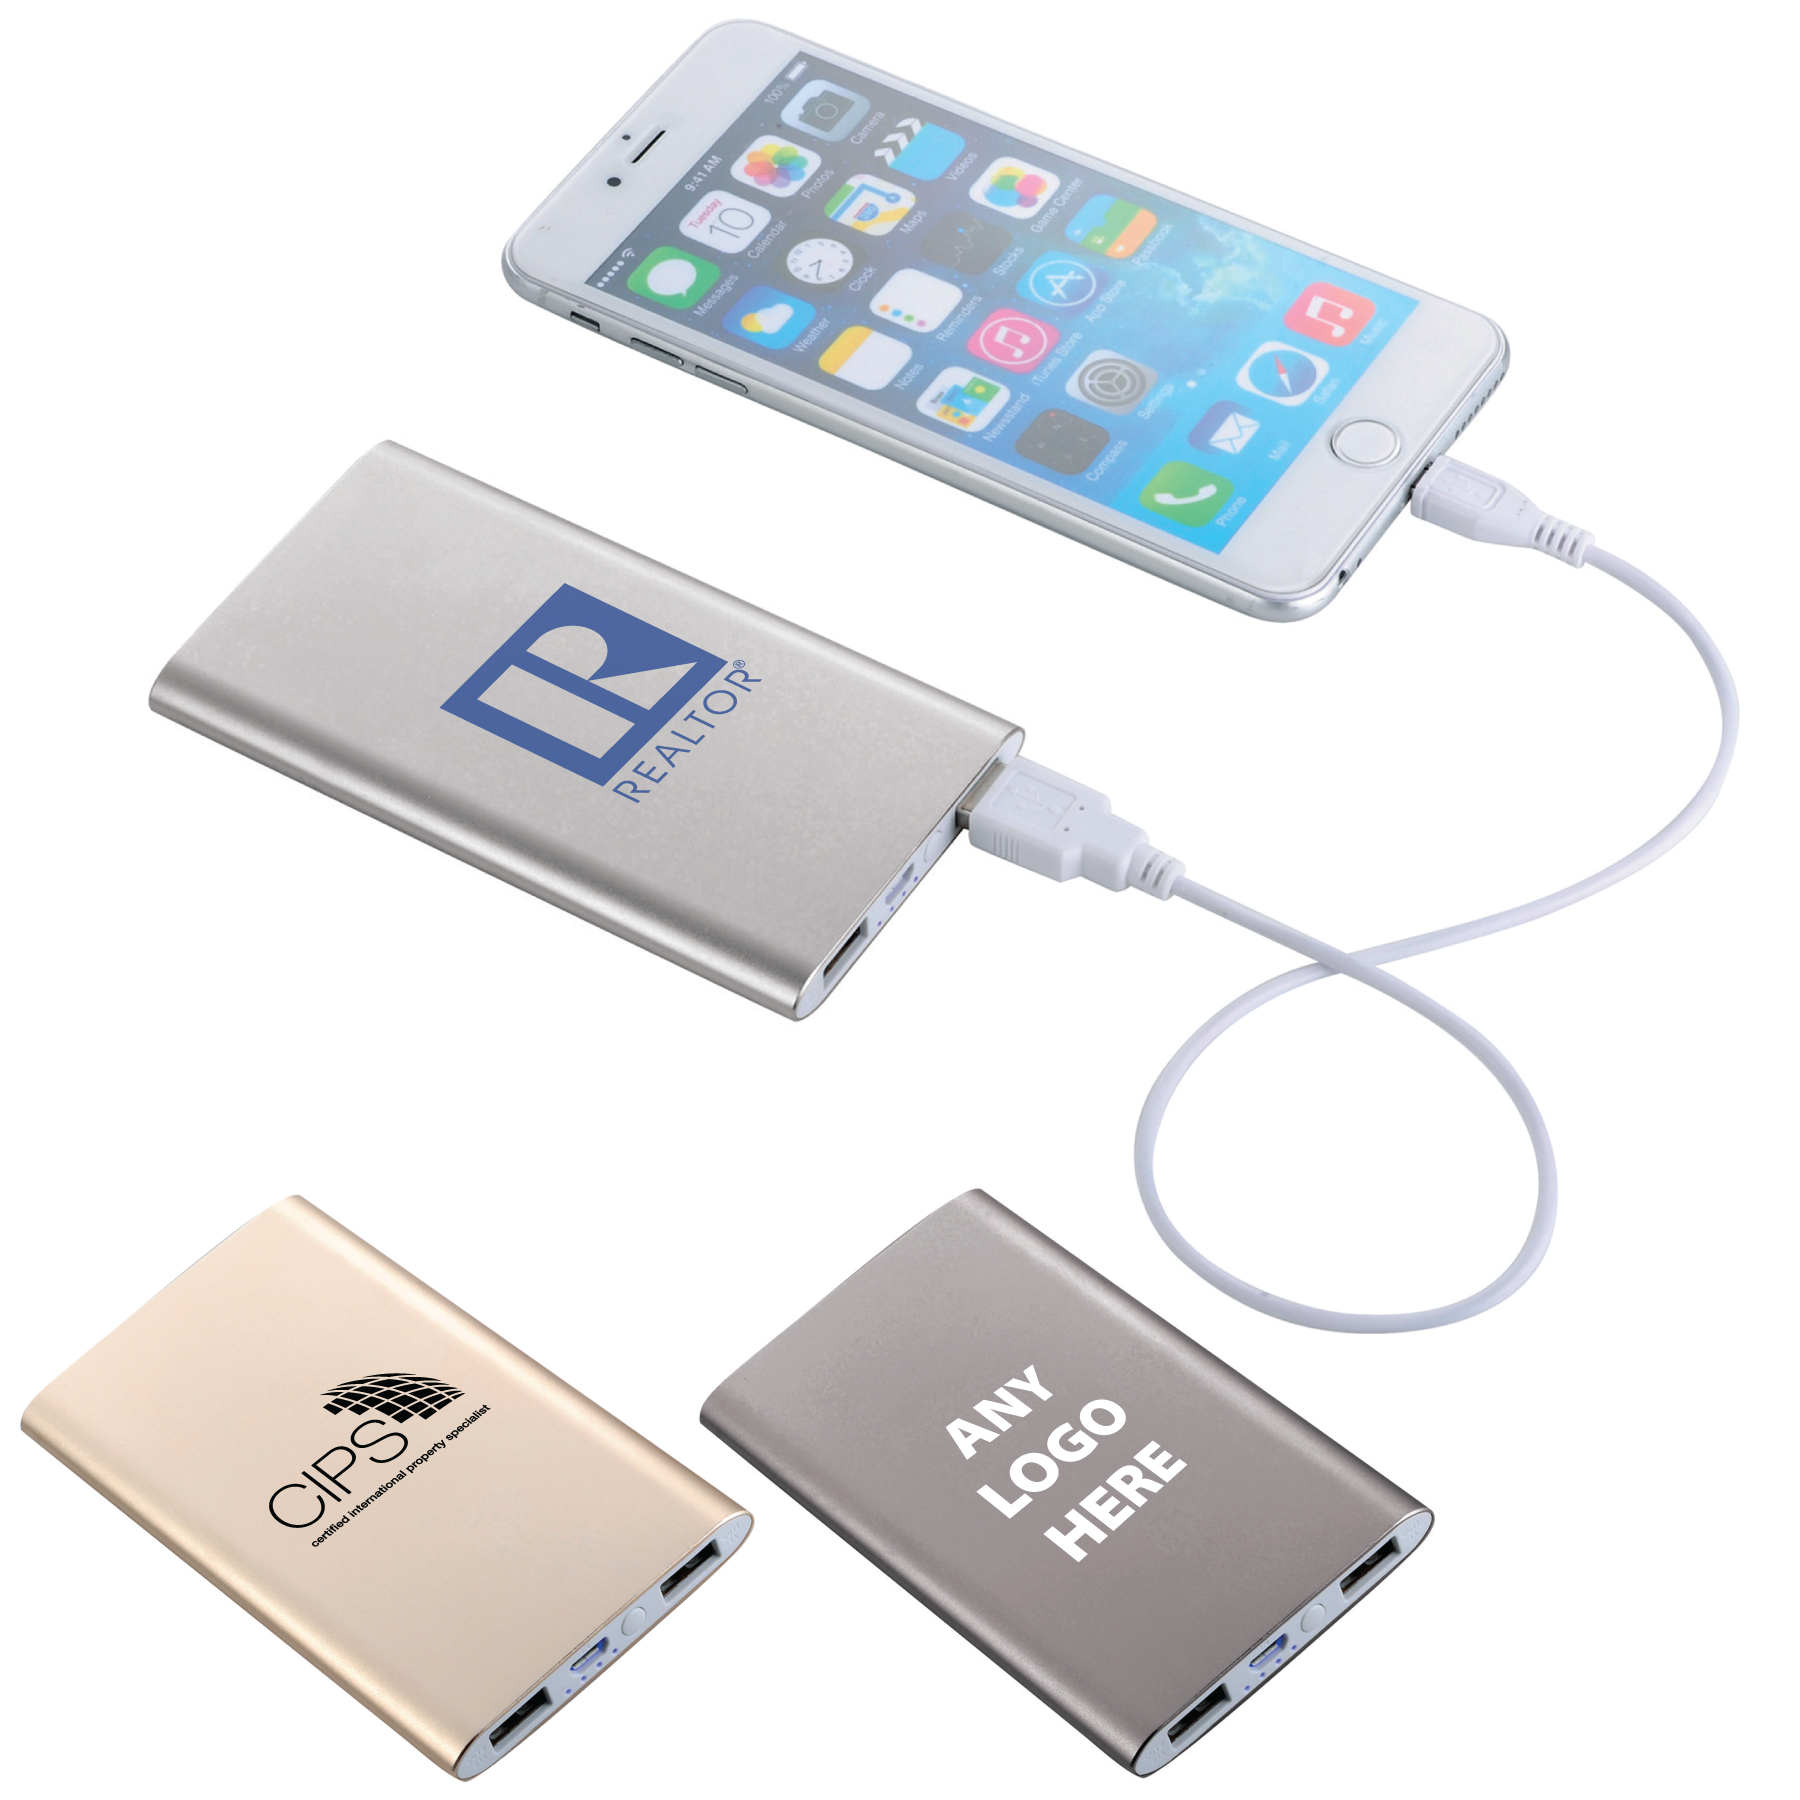 Zander Power Bank (Special Order) - RTS5141